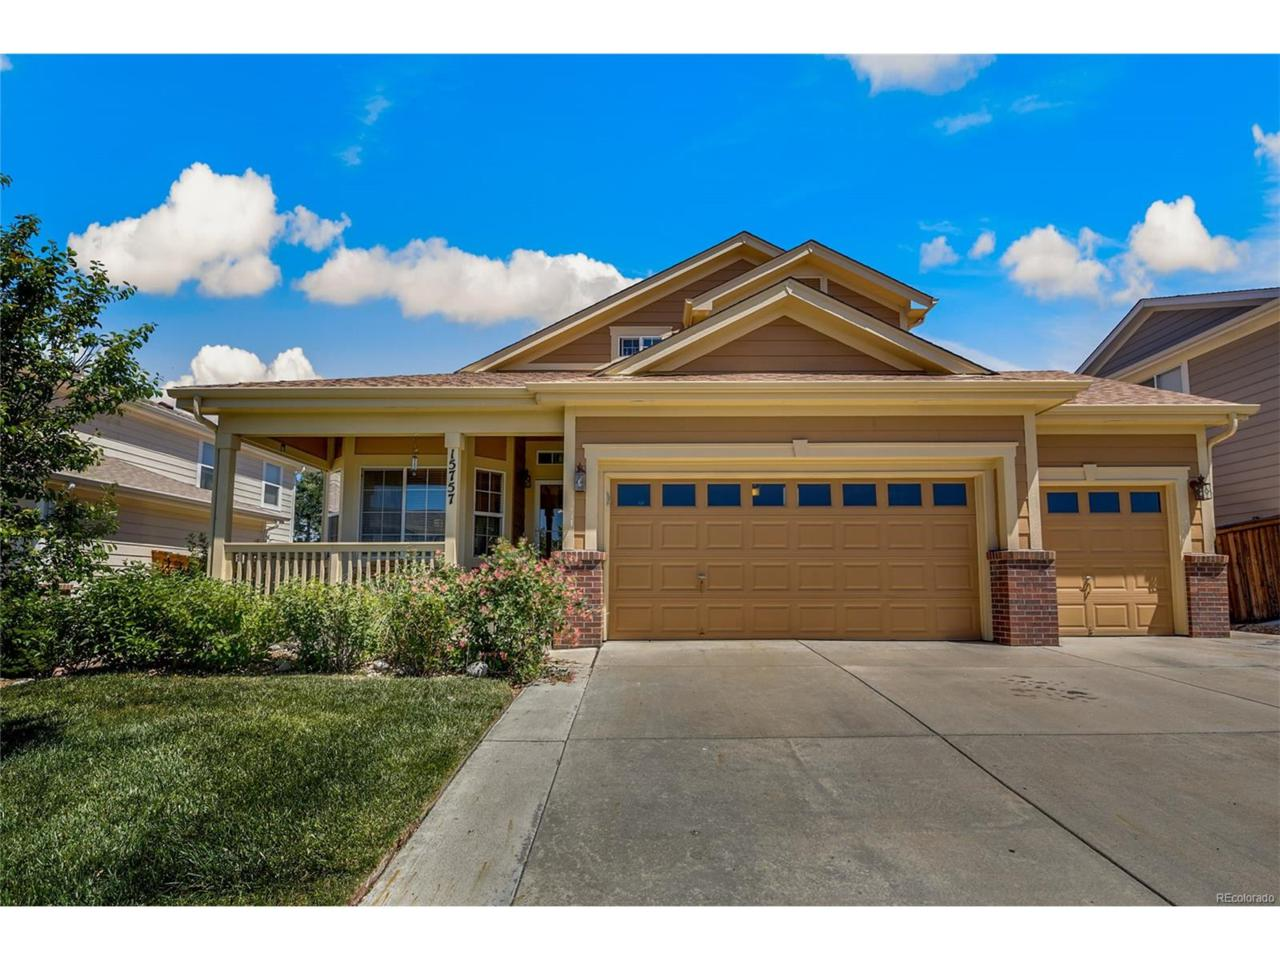 15757 E 107th Way, Commerce City, CO 80022 (MLS #3827737) :: 8z Real Estate